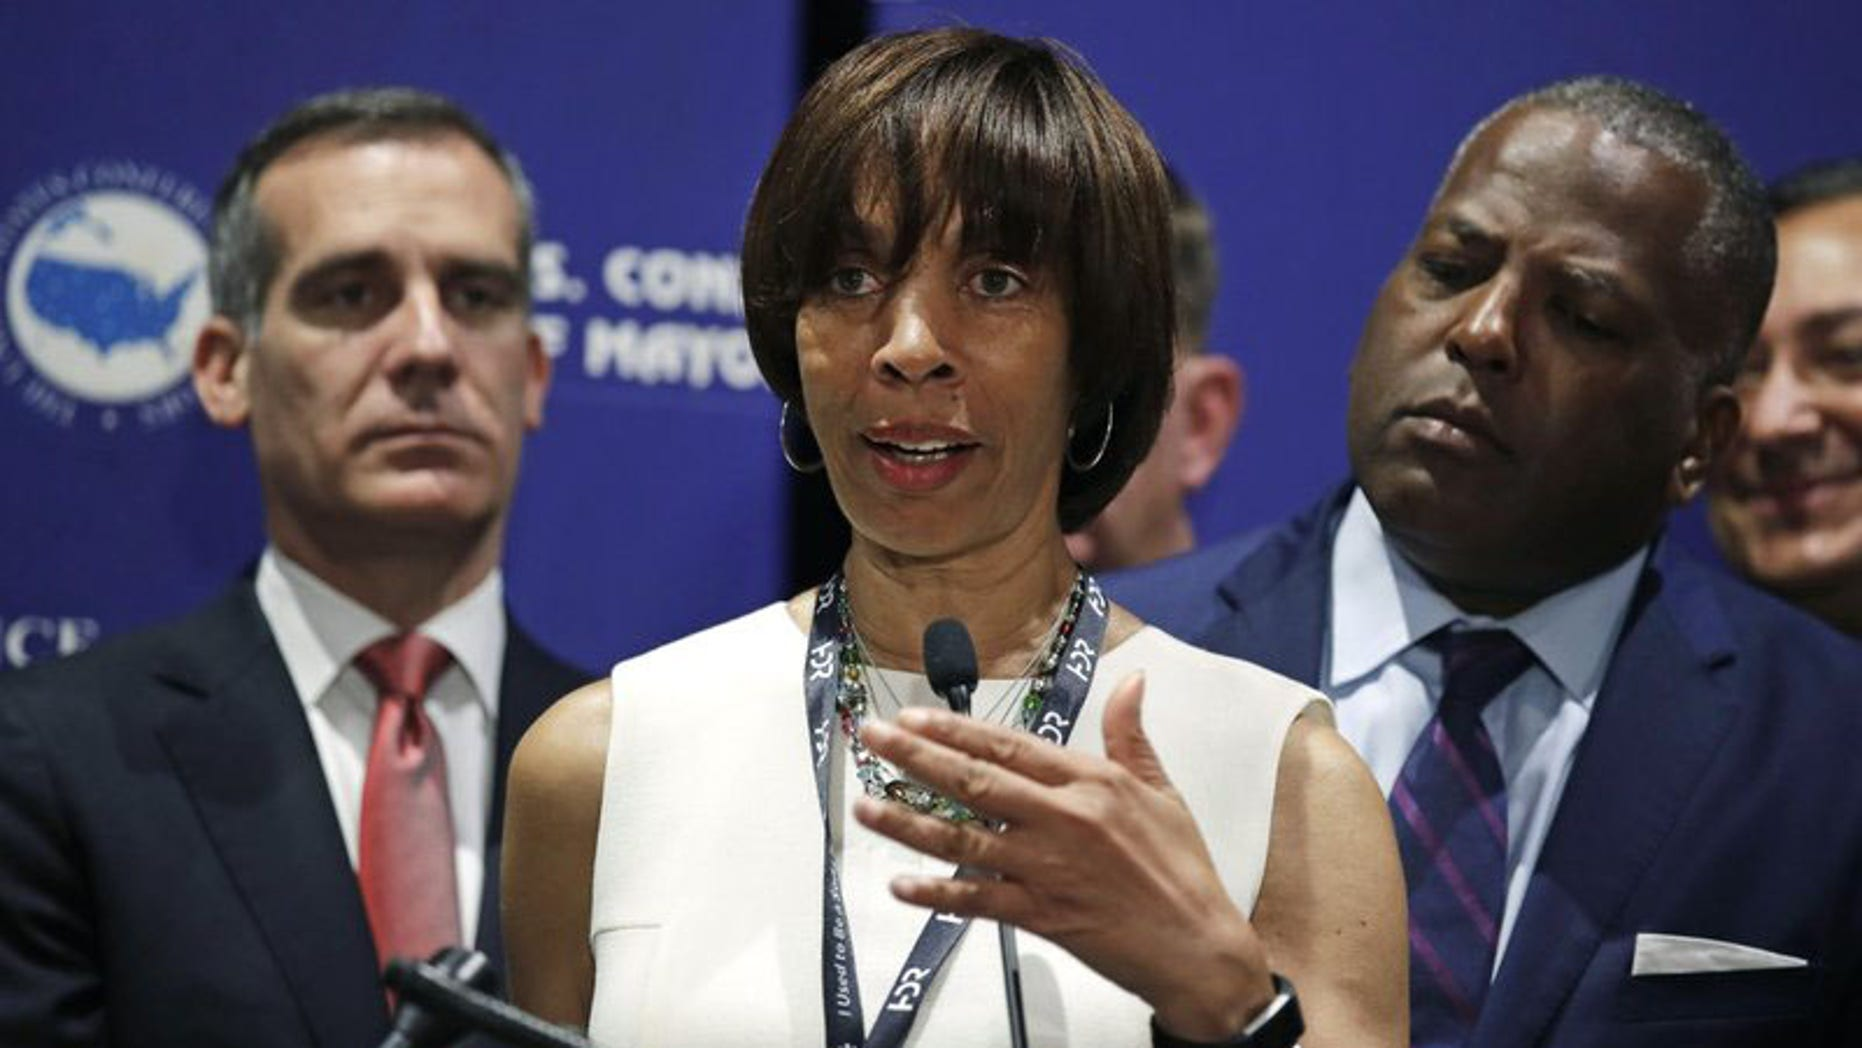 Democratic Mayor Catherine Pugh was elected in 2016. Before that, she served as a state senator.